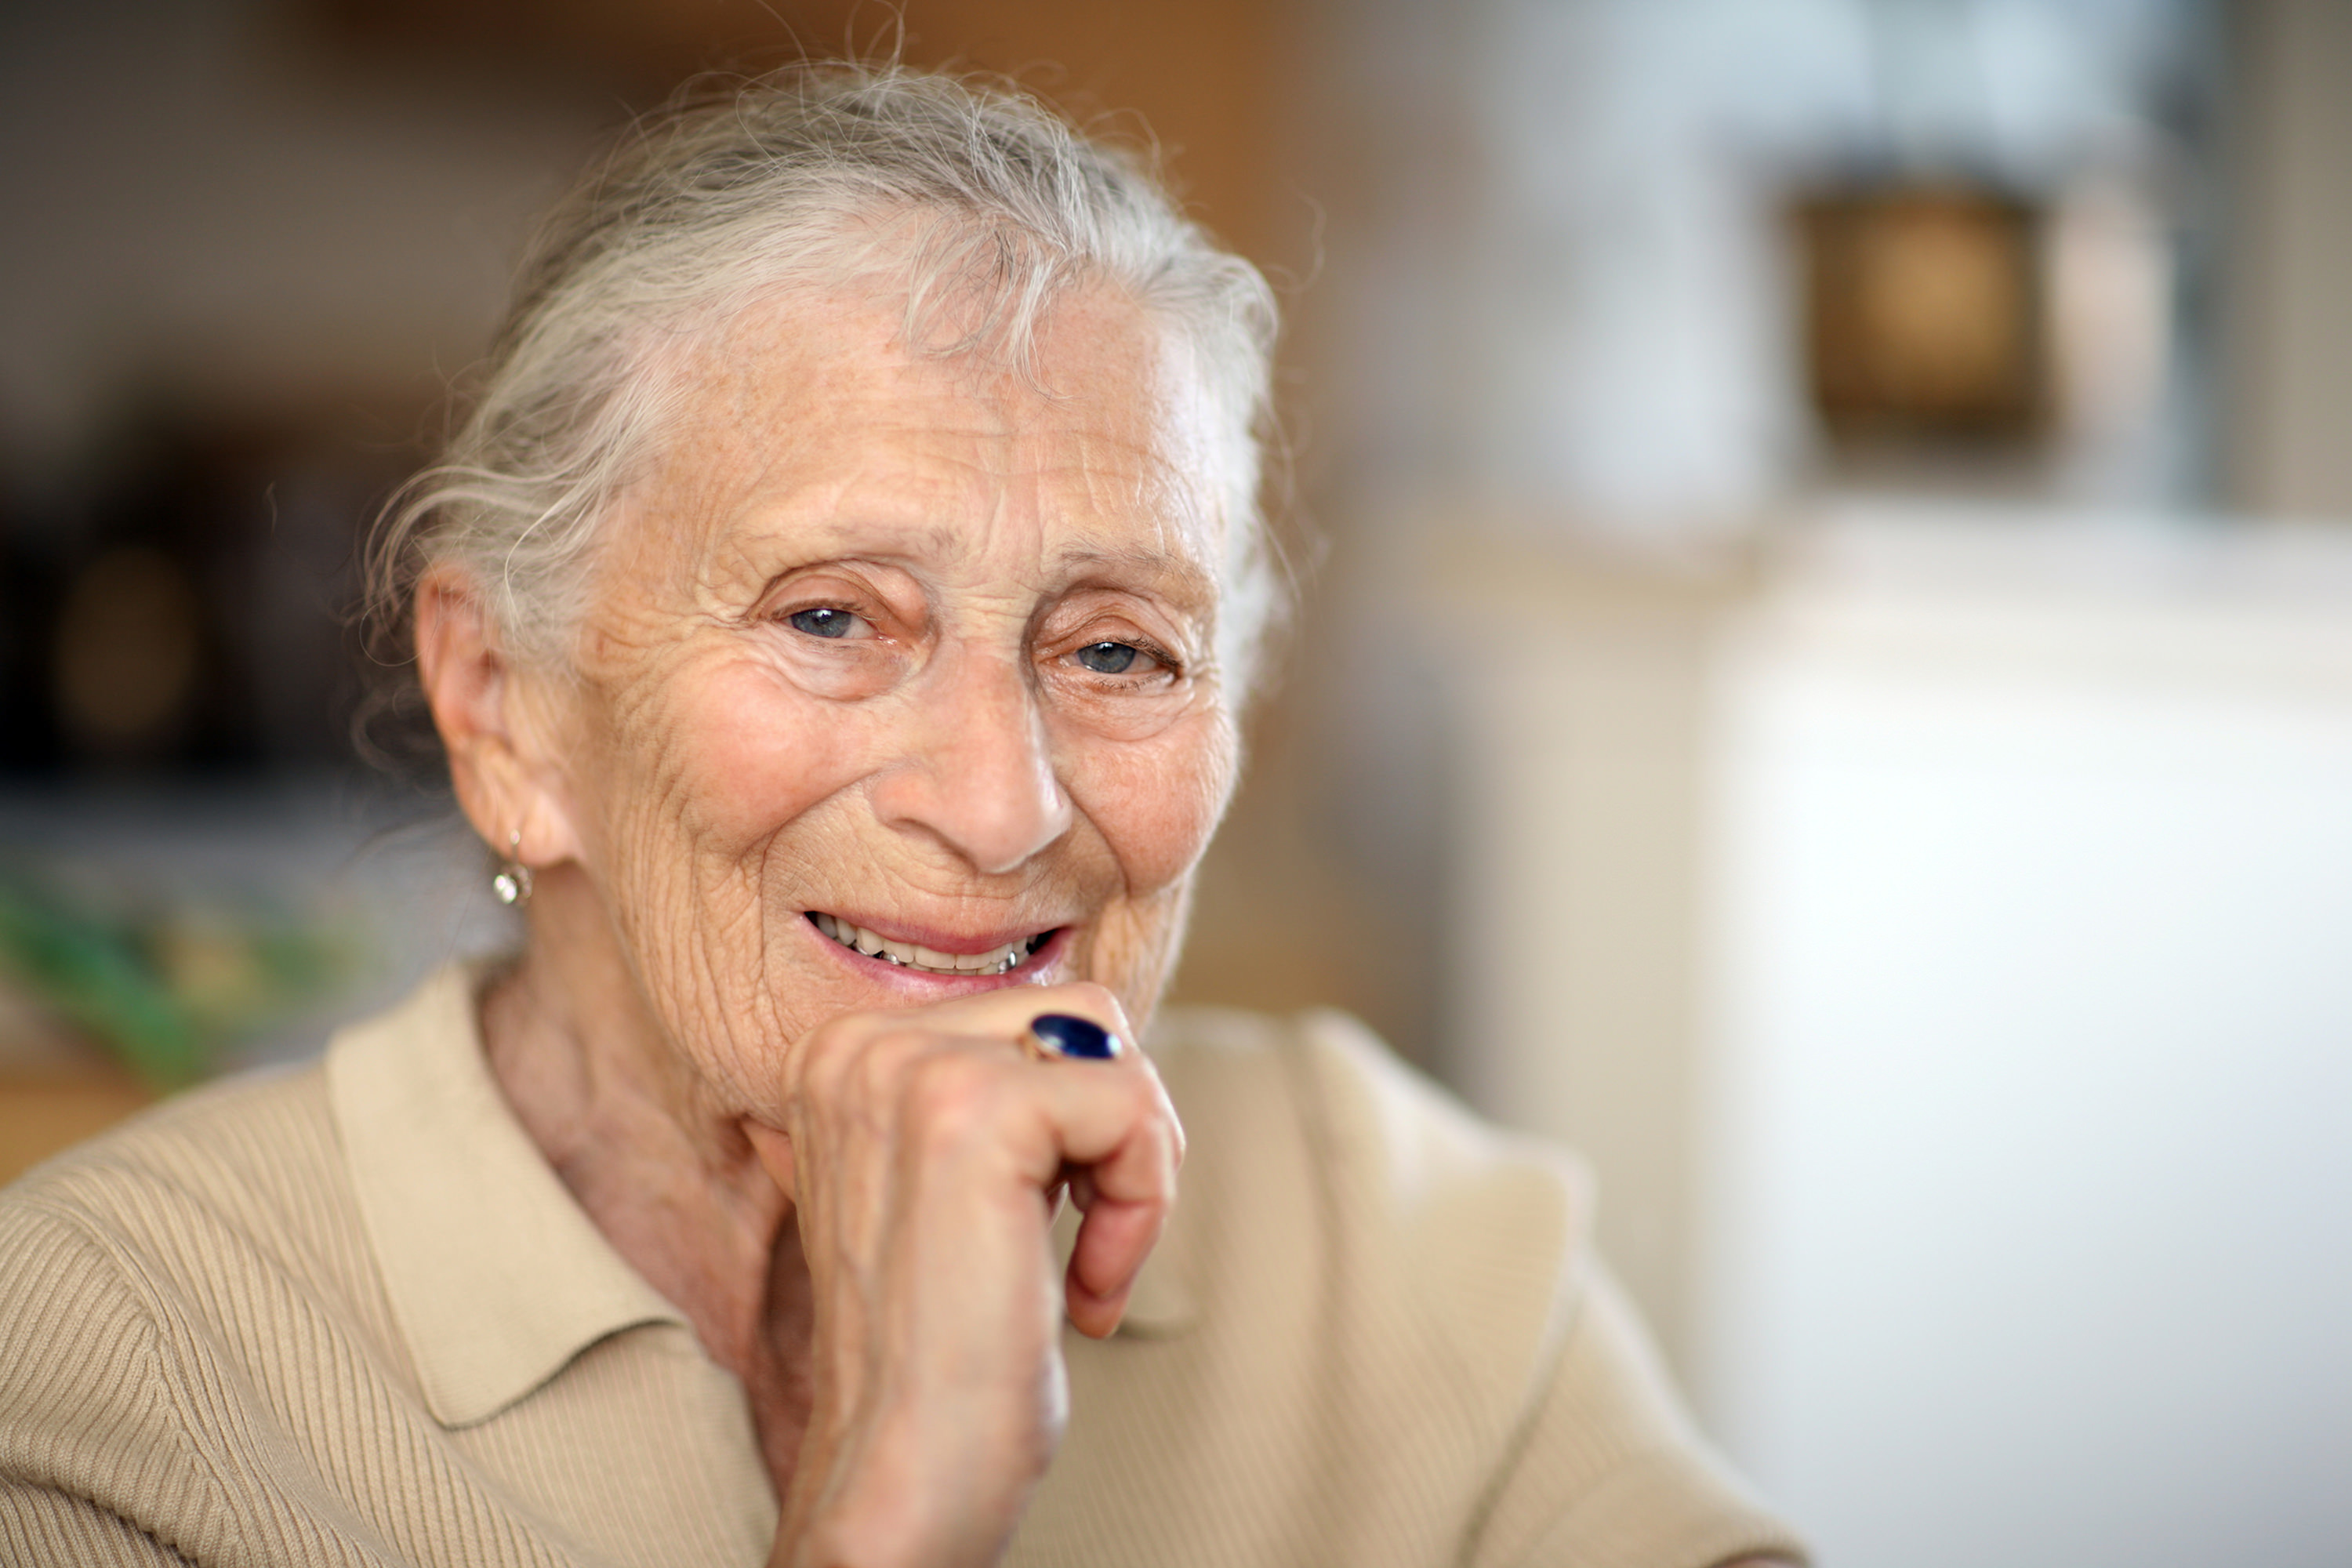 older woman with hand on chin, smiling